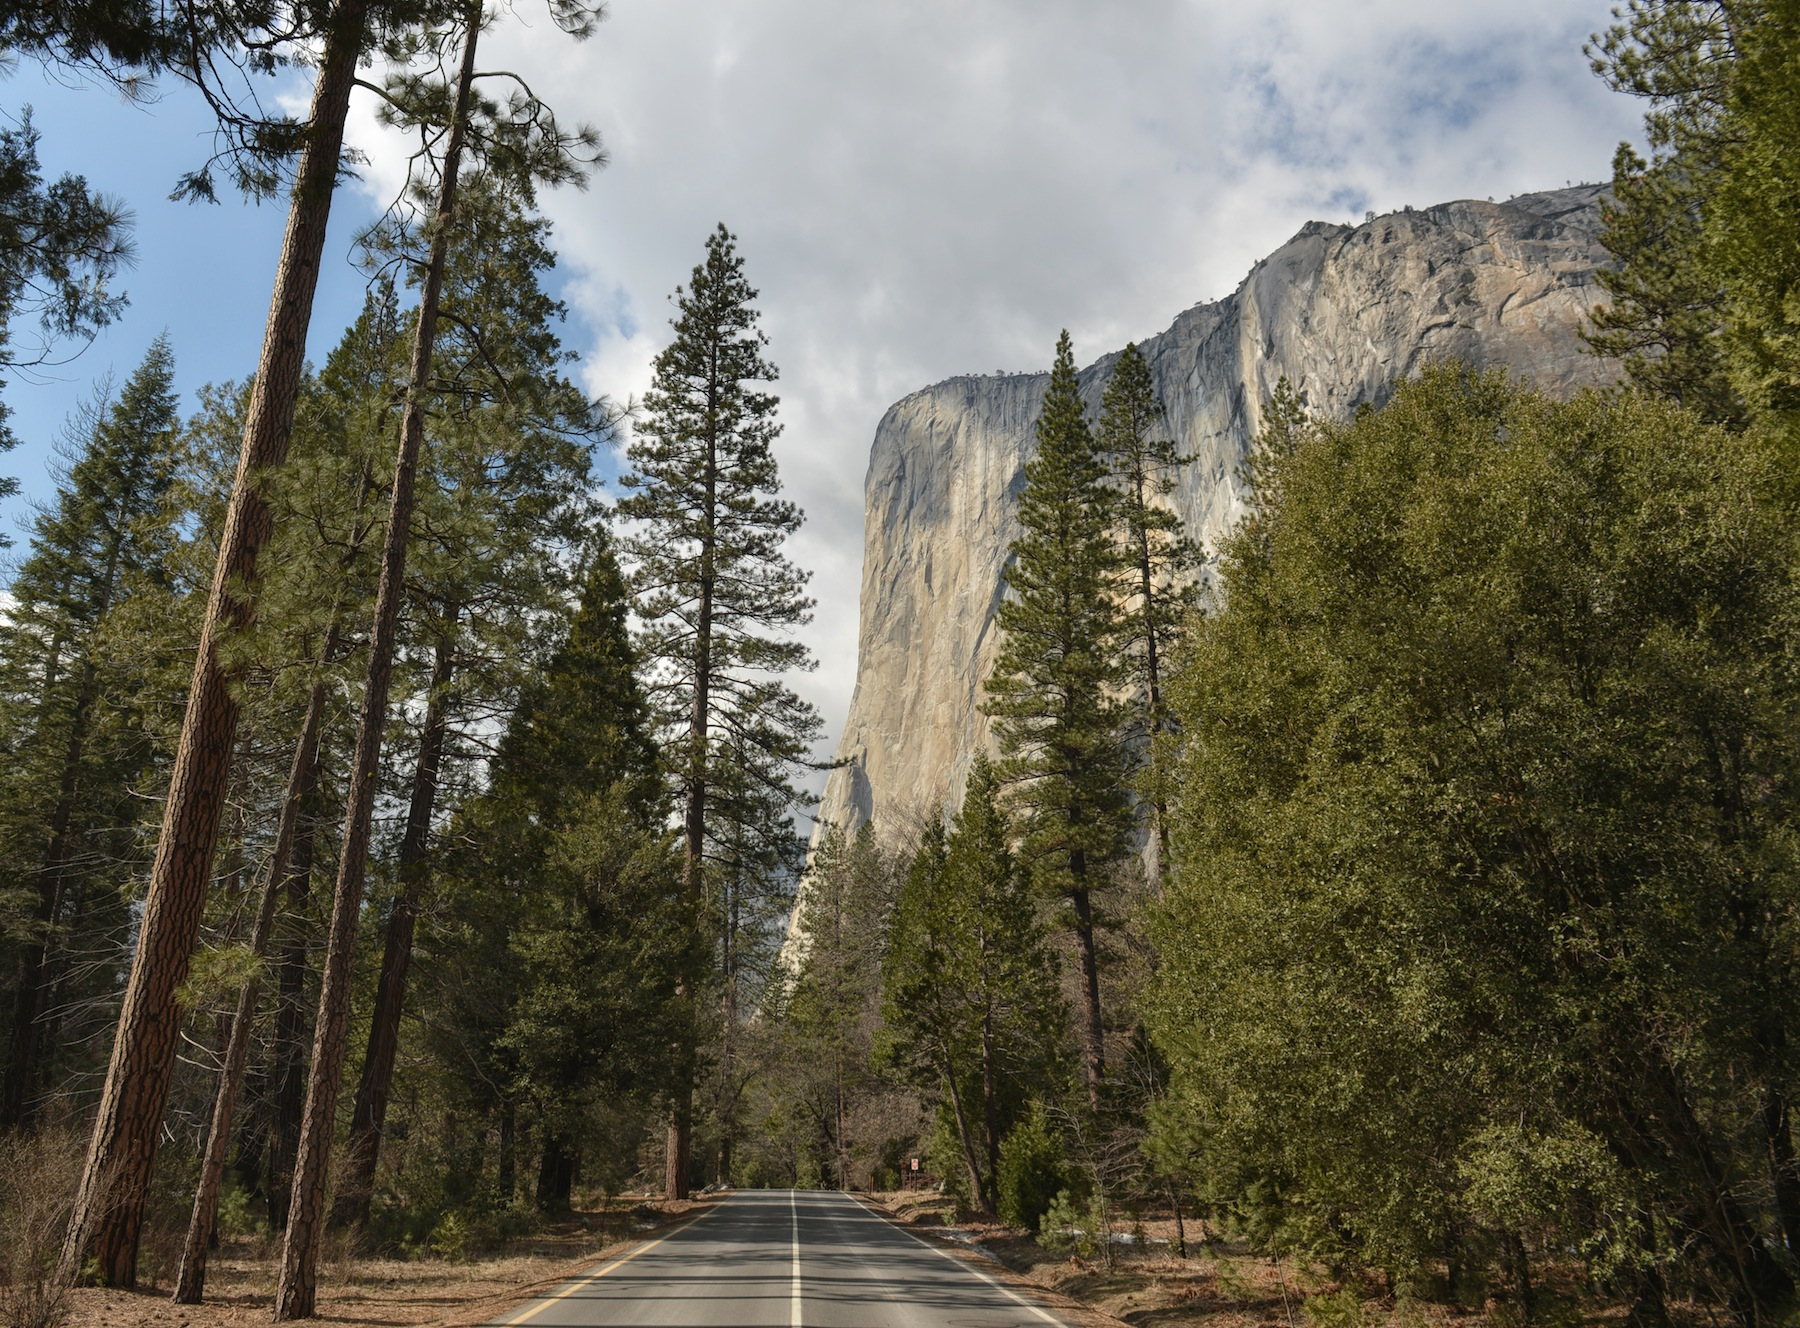 california places camp town chinese place google haunted map yosemite national park dsc